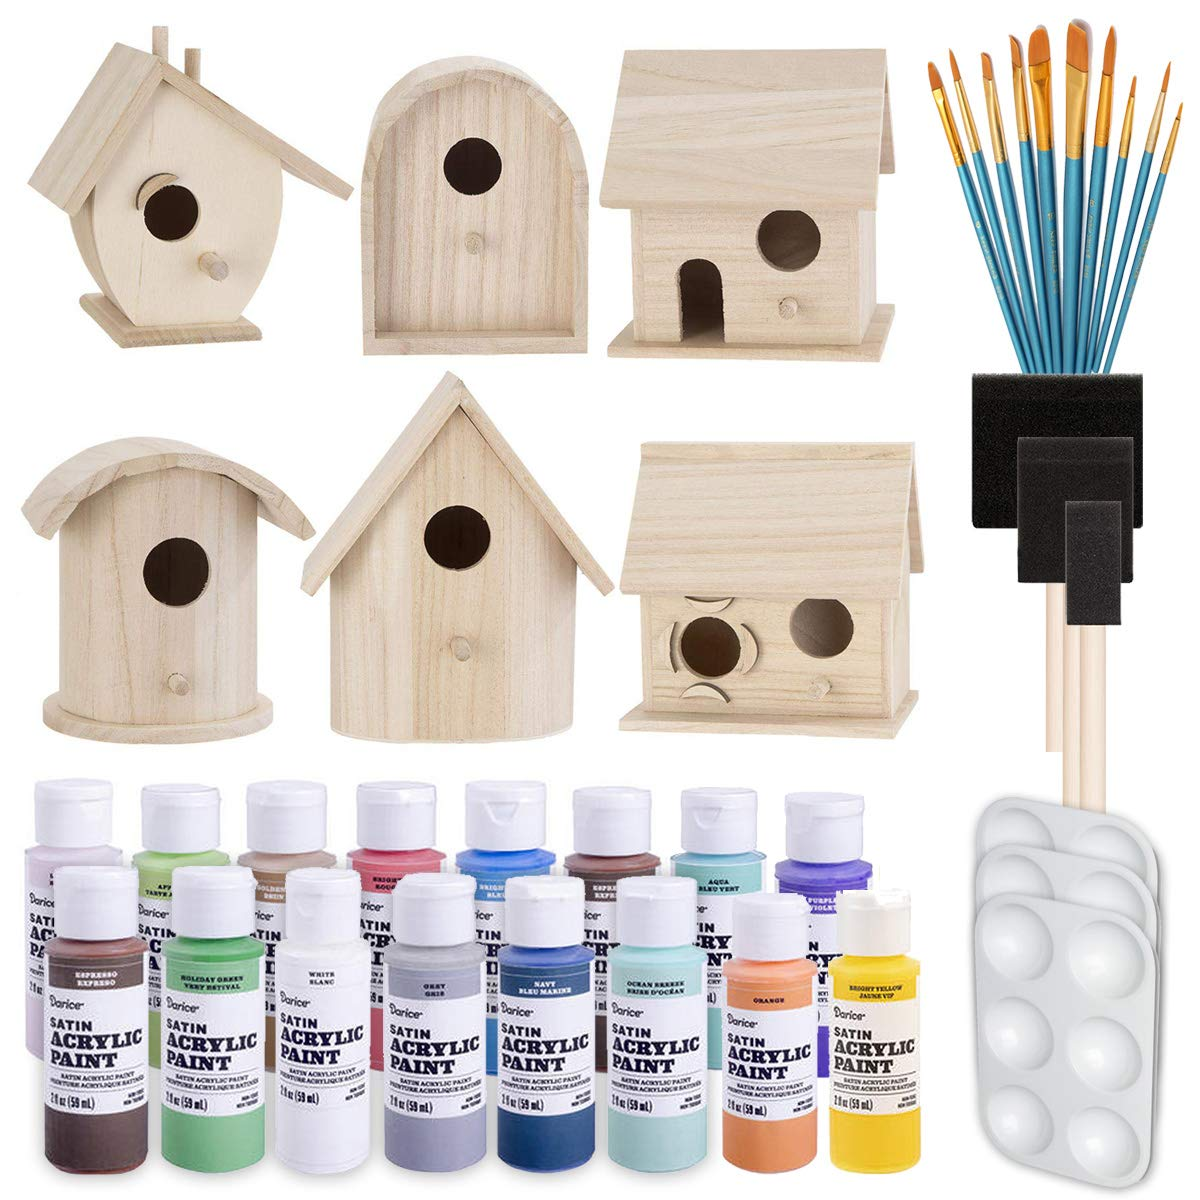 Birdhouse Craft Bundle - 6 Unfinished Wood Birdhouses (5-7 Inches), 16x 2-Ounce Acrylic Paints, Pixiss Nylon 10 Round and Pointed Brush Set, 3X Palettes by GrandProducts